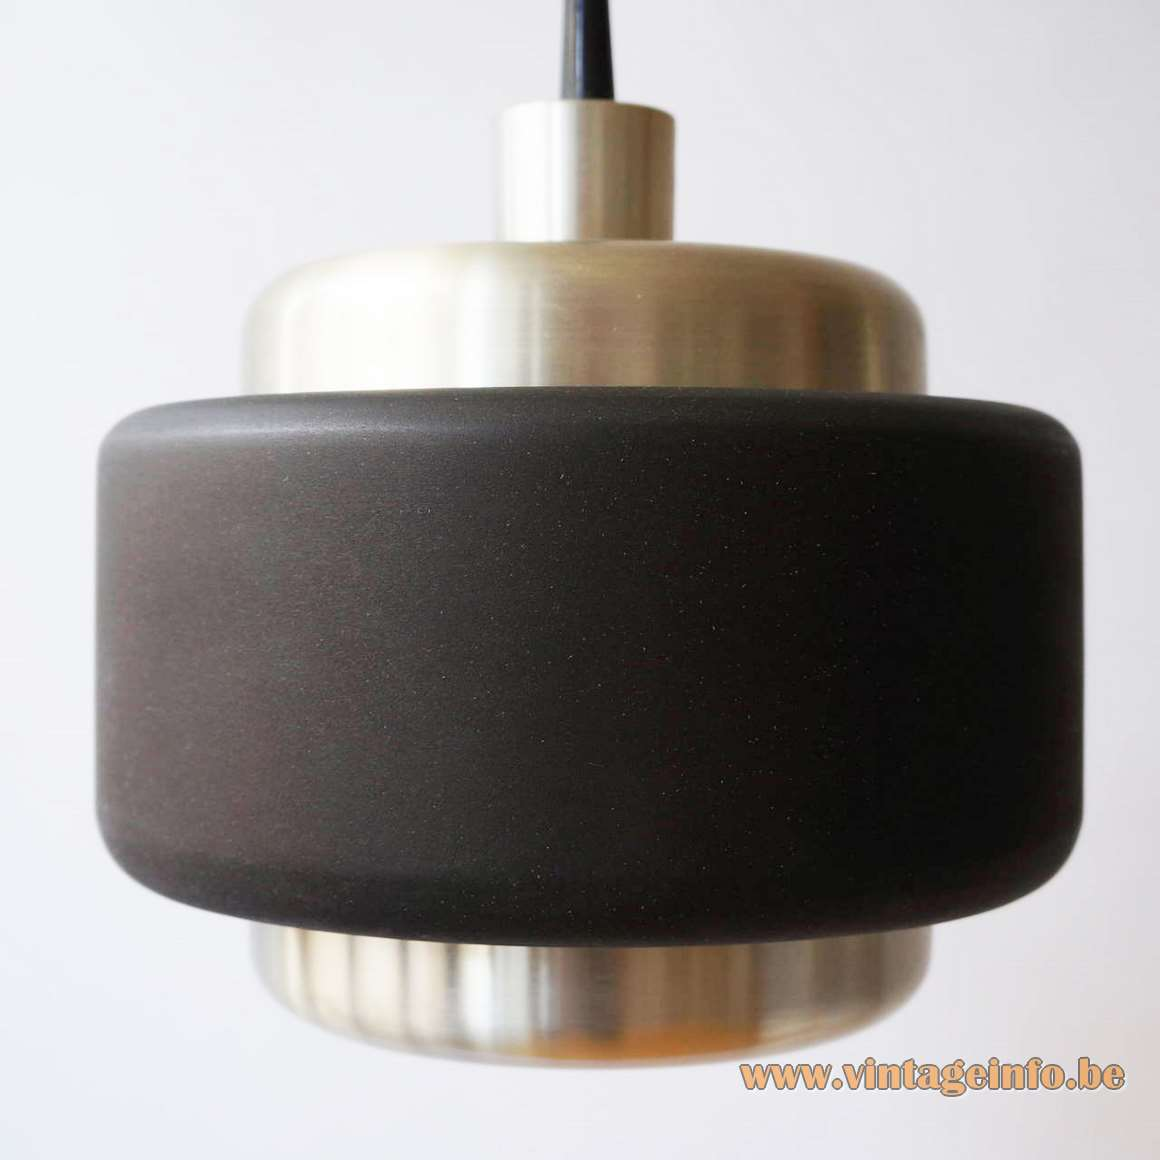 Philips round brushed aluminium pendant lamps black ring model LPG 201 1970s 1980s MCM The Netherlands E27